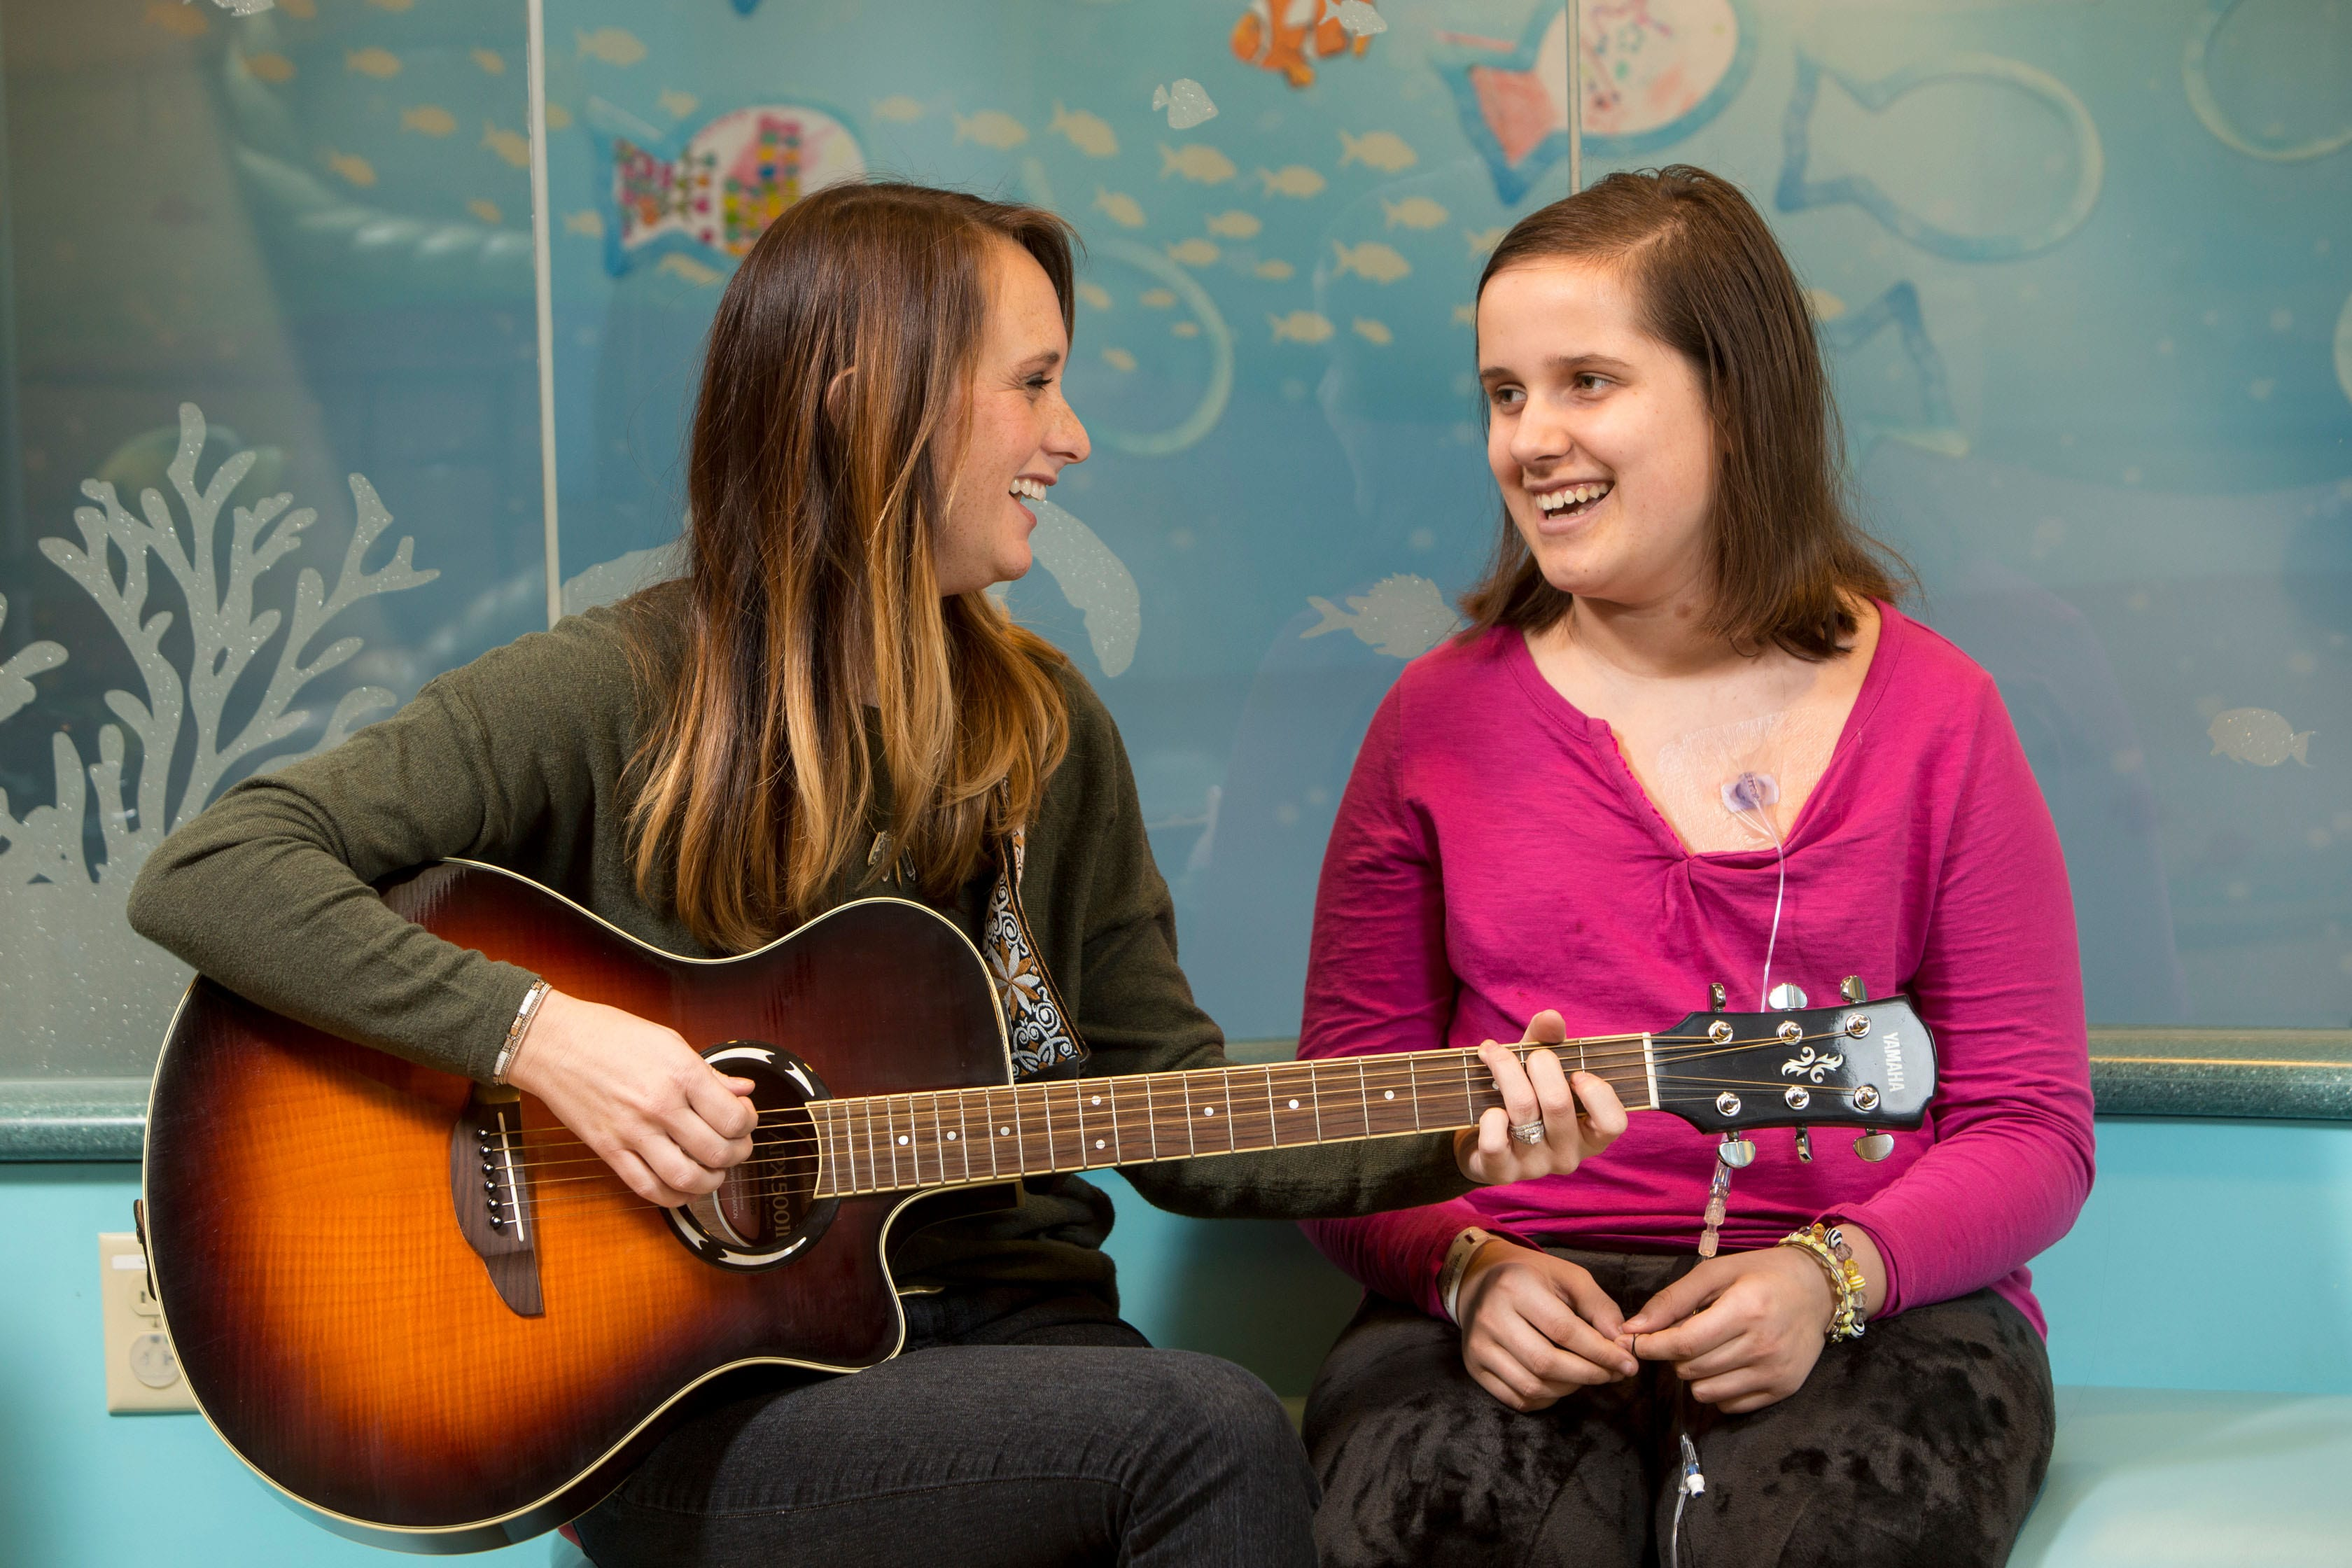 Maryville University music therapy student working with a patient